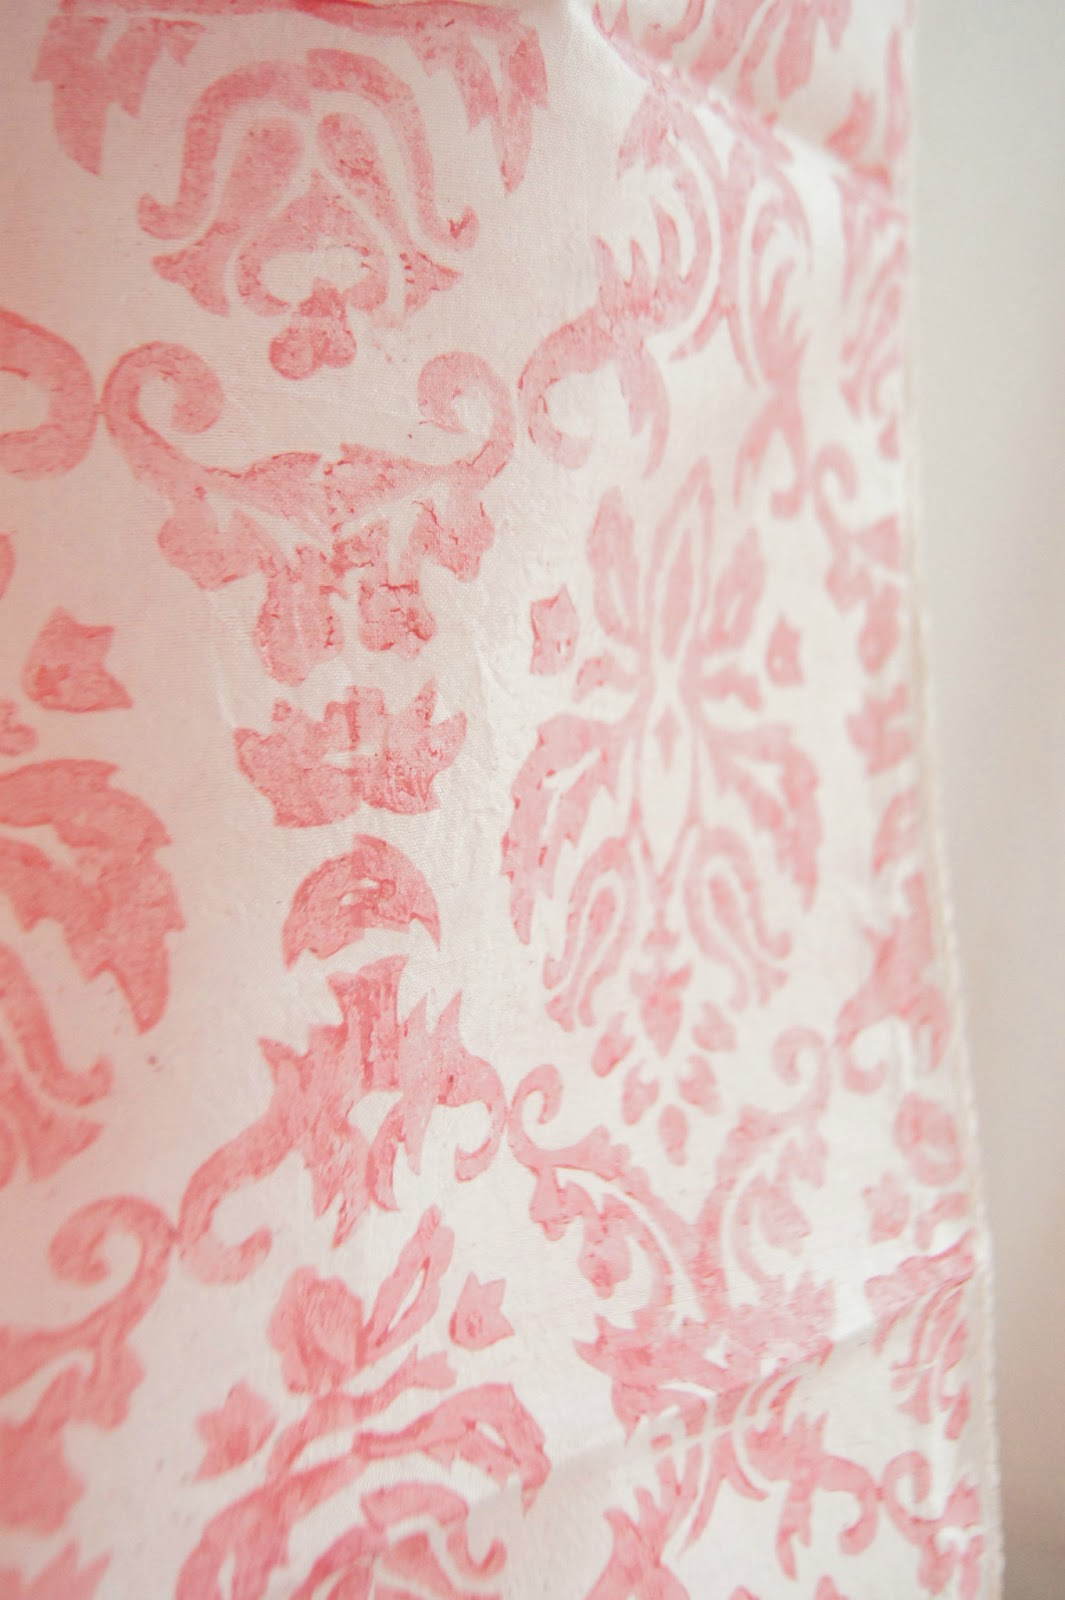 pink and white damask wallpaper   wwwhigh definition wallpapercom 1065x1600